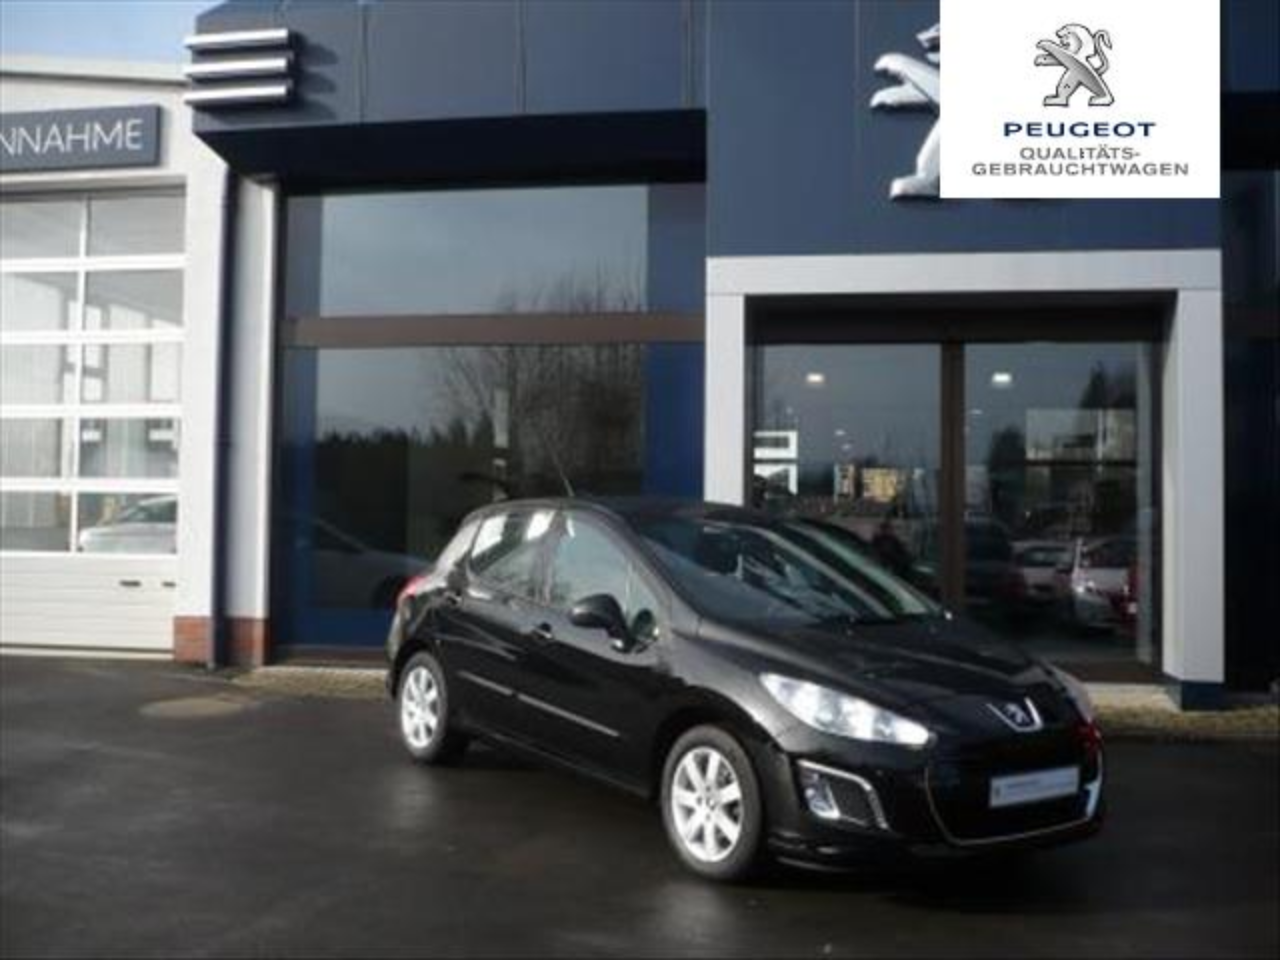 Peugeot 308 Active HDi 110 5-turig